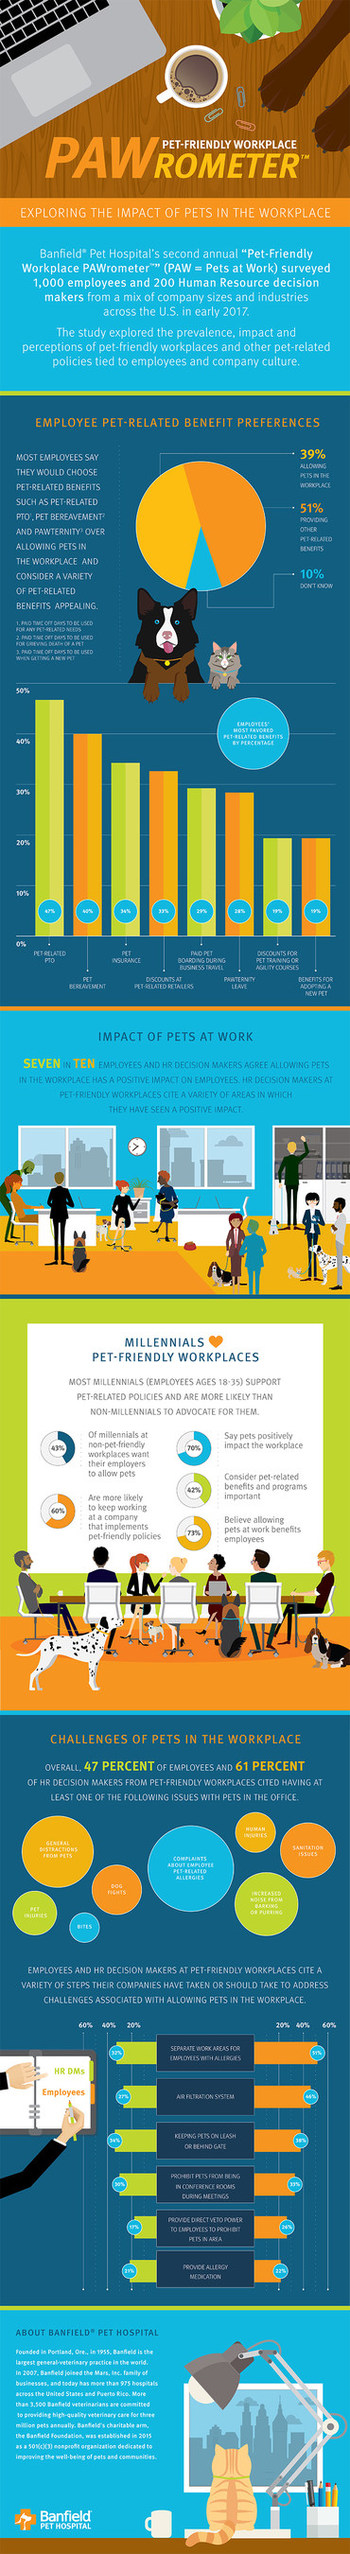 """Banfield® Pet Hospital's second annual """"Pet-Friendly Workplace PAWrometer™"""" (PAW = Pets at Work) surveyed 1,000 employees and 200 Human Resource decision makers from a mix of company sizes and industries across the U.S. in early 2017. The study explored the prevalence, impact and perceptions of pet-friendly workplaces and other pet-related policies tied to employees and company culture."""